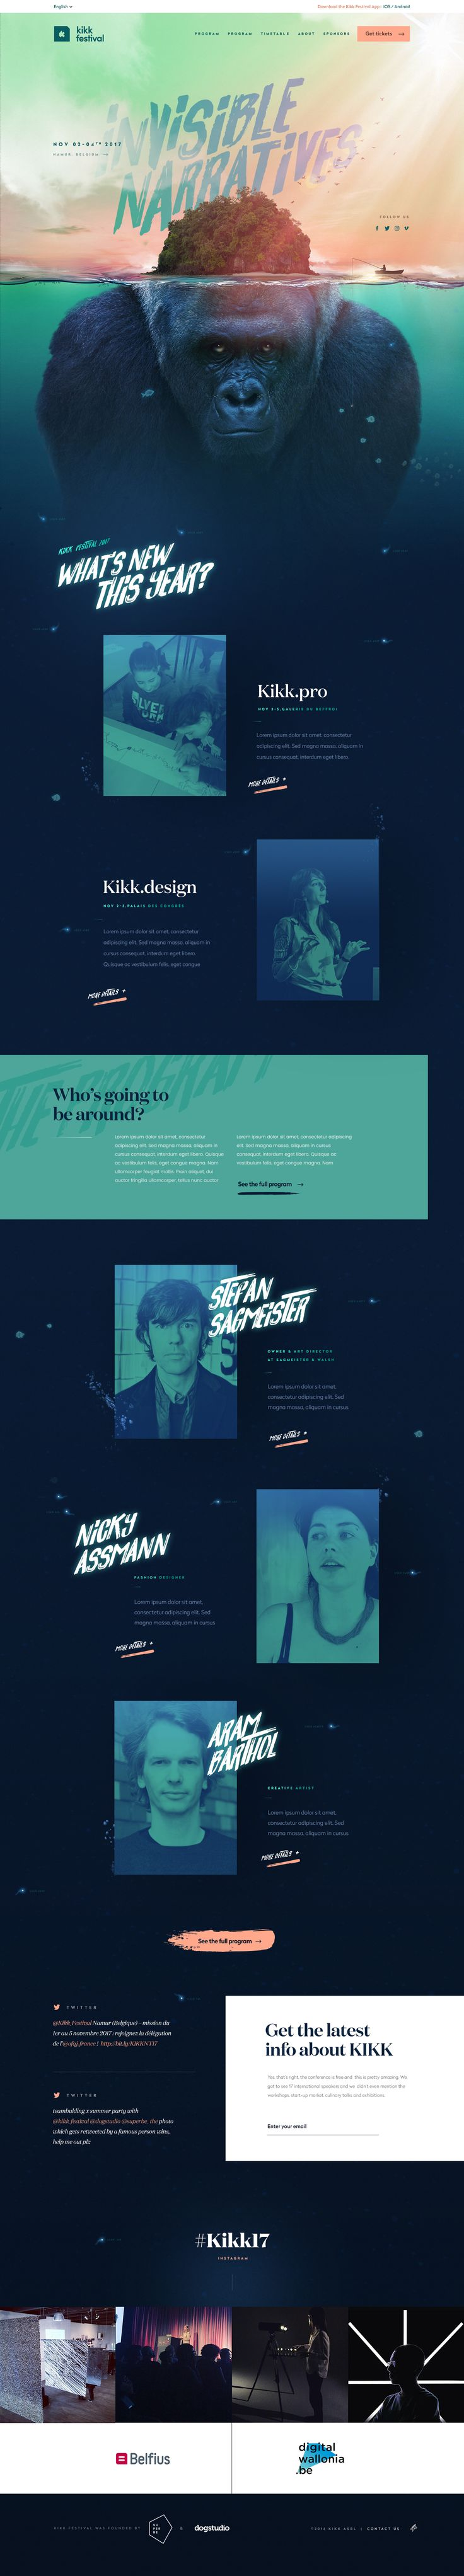 Kikk17 homepage full by dogstudio